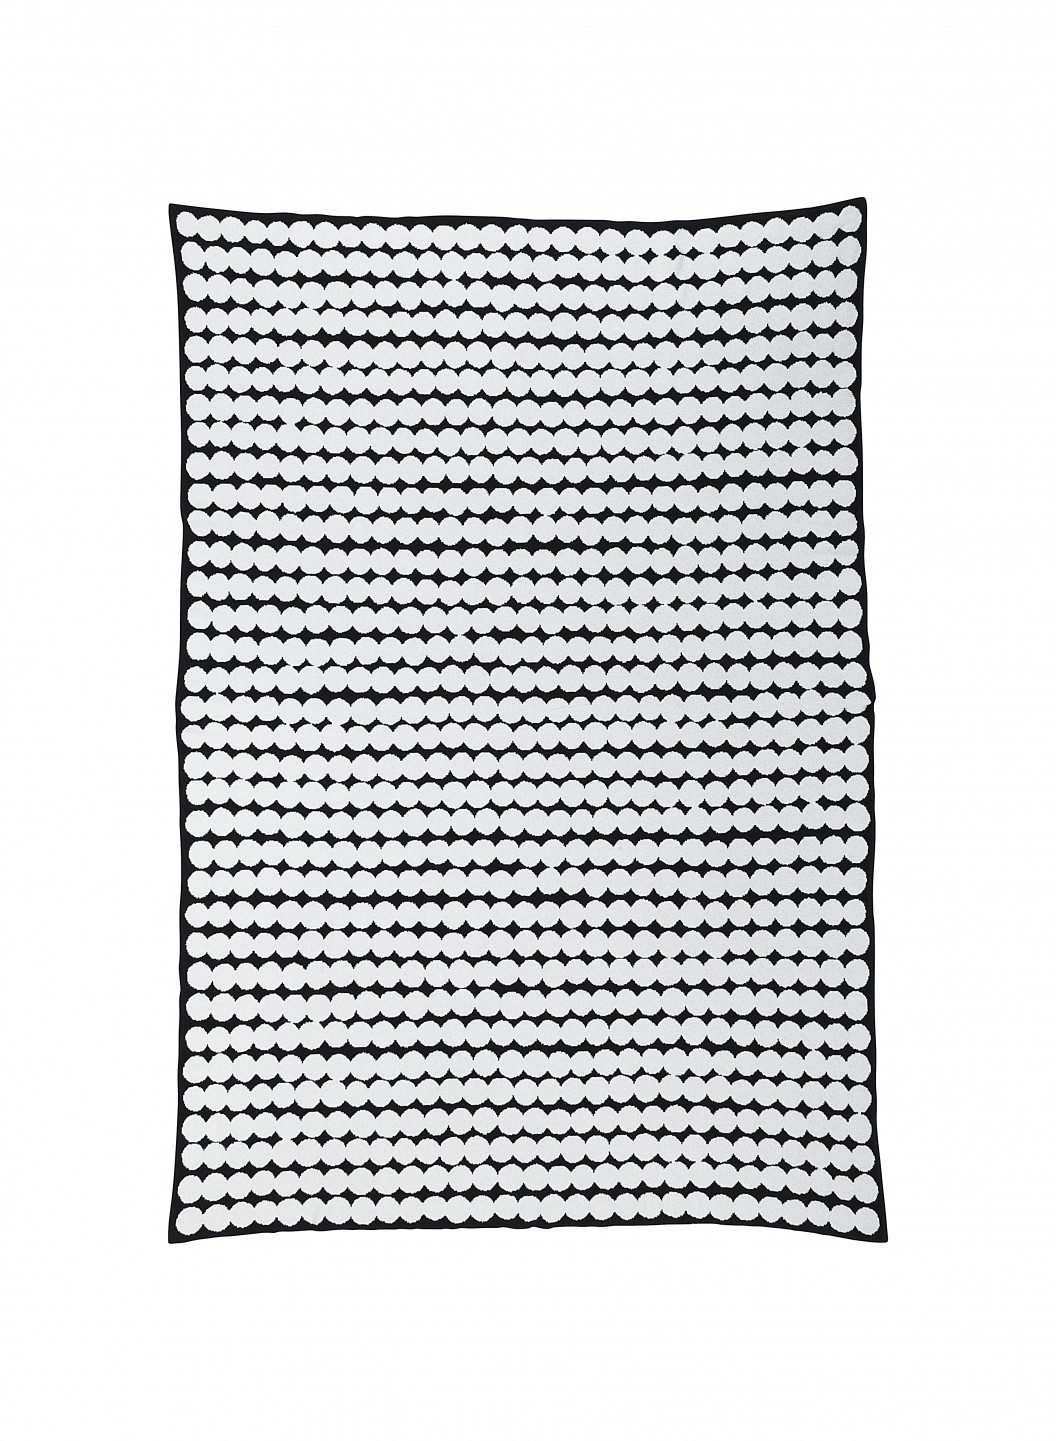 Rasymatto_knitted_blanket_190_3_65812